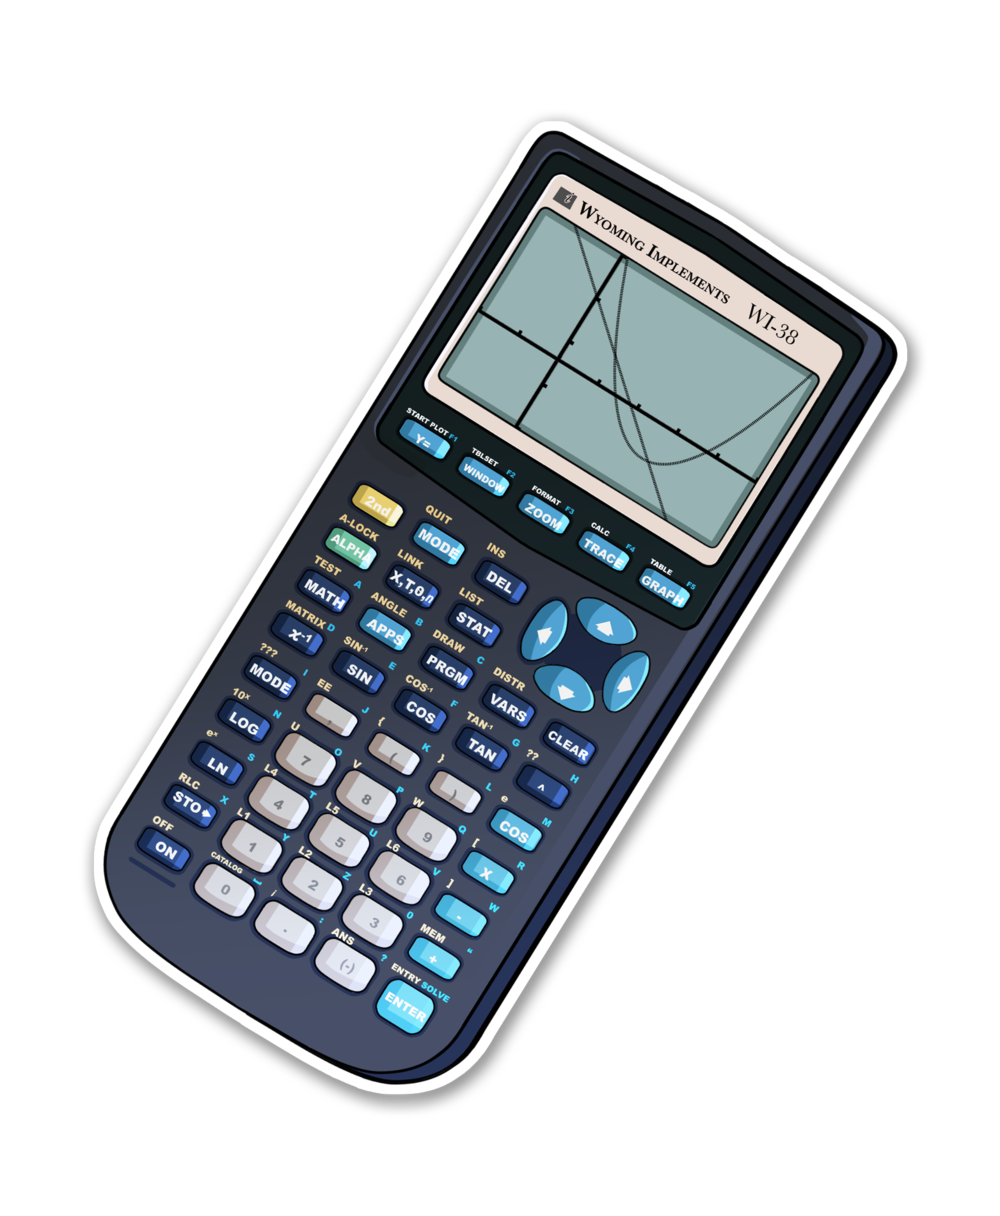 graphingCalculatorBorder.png